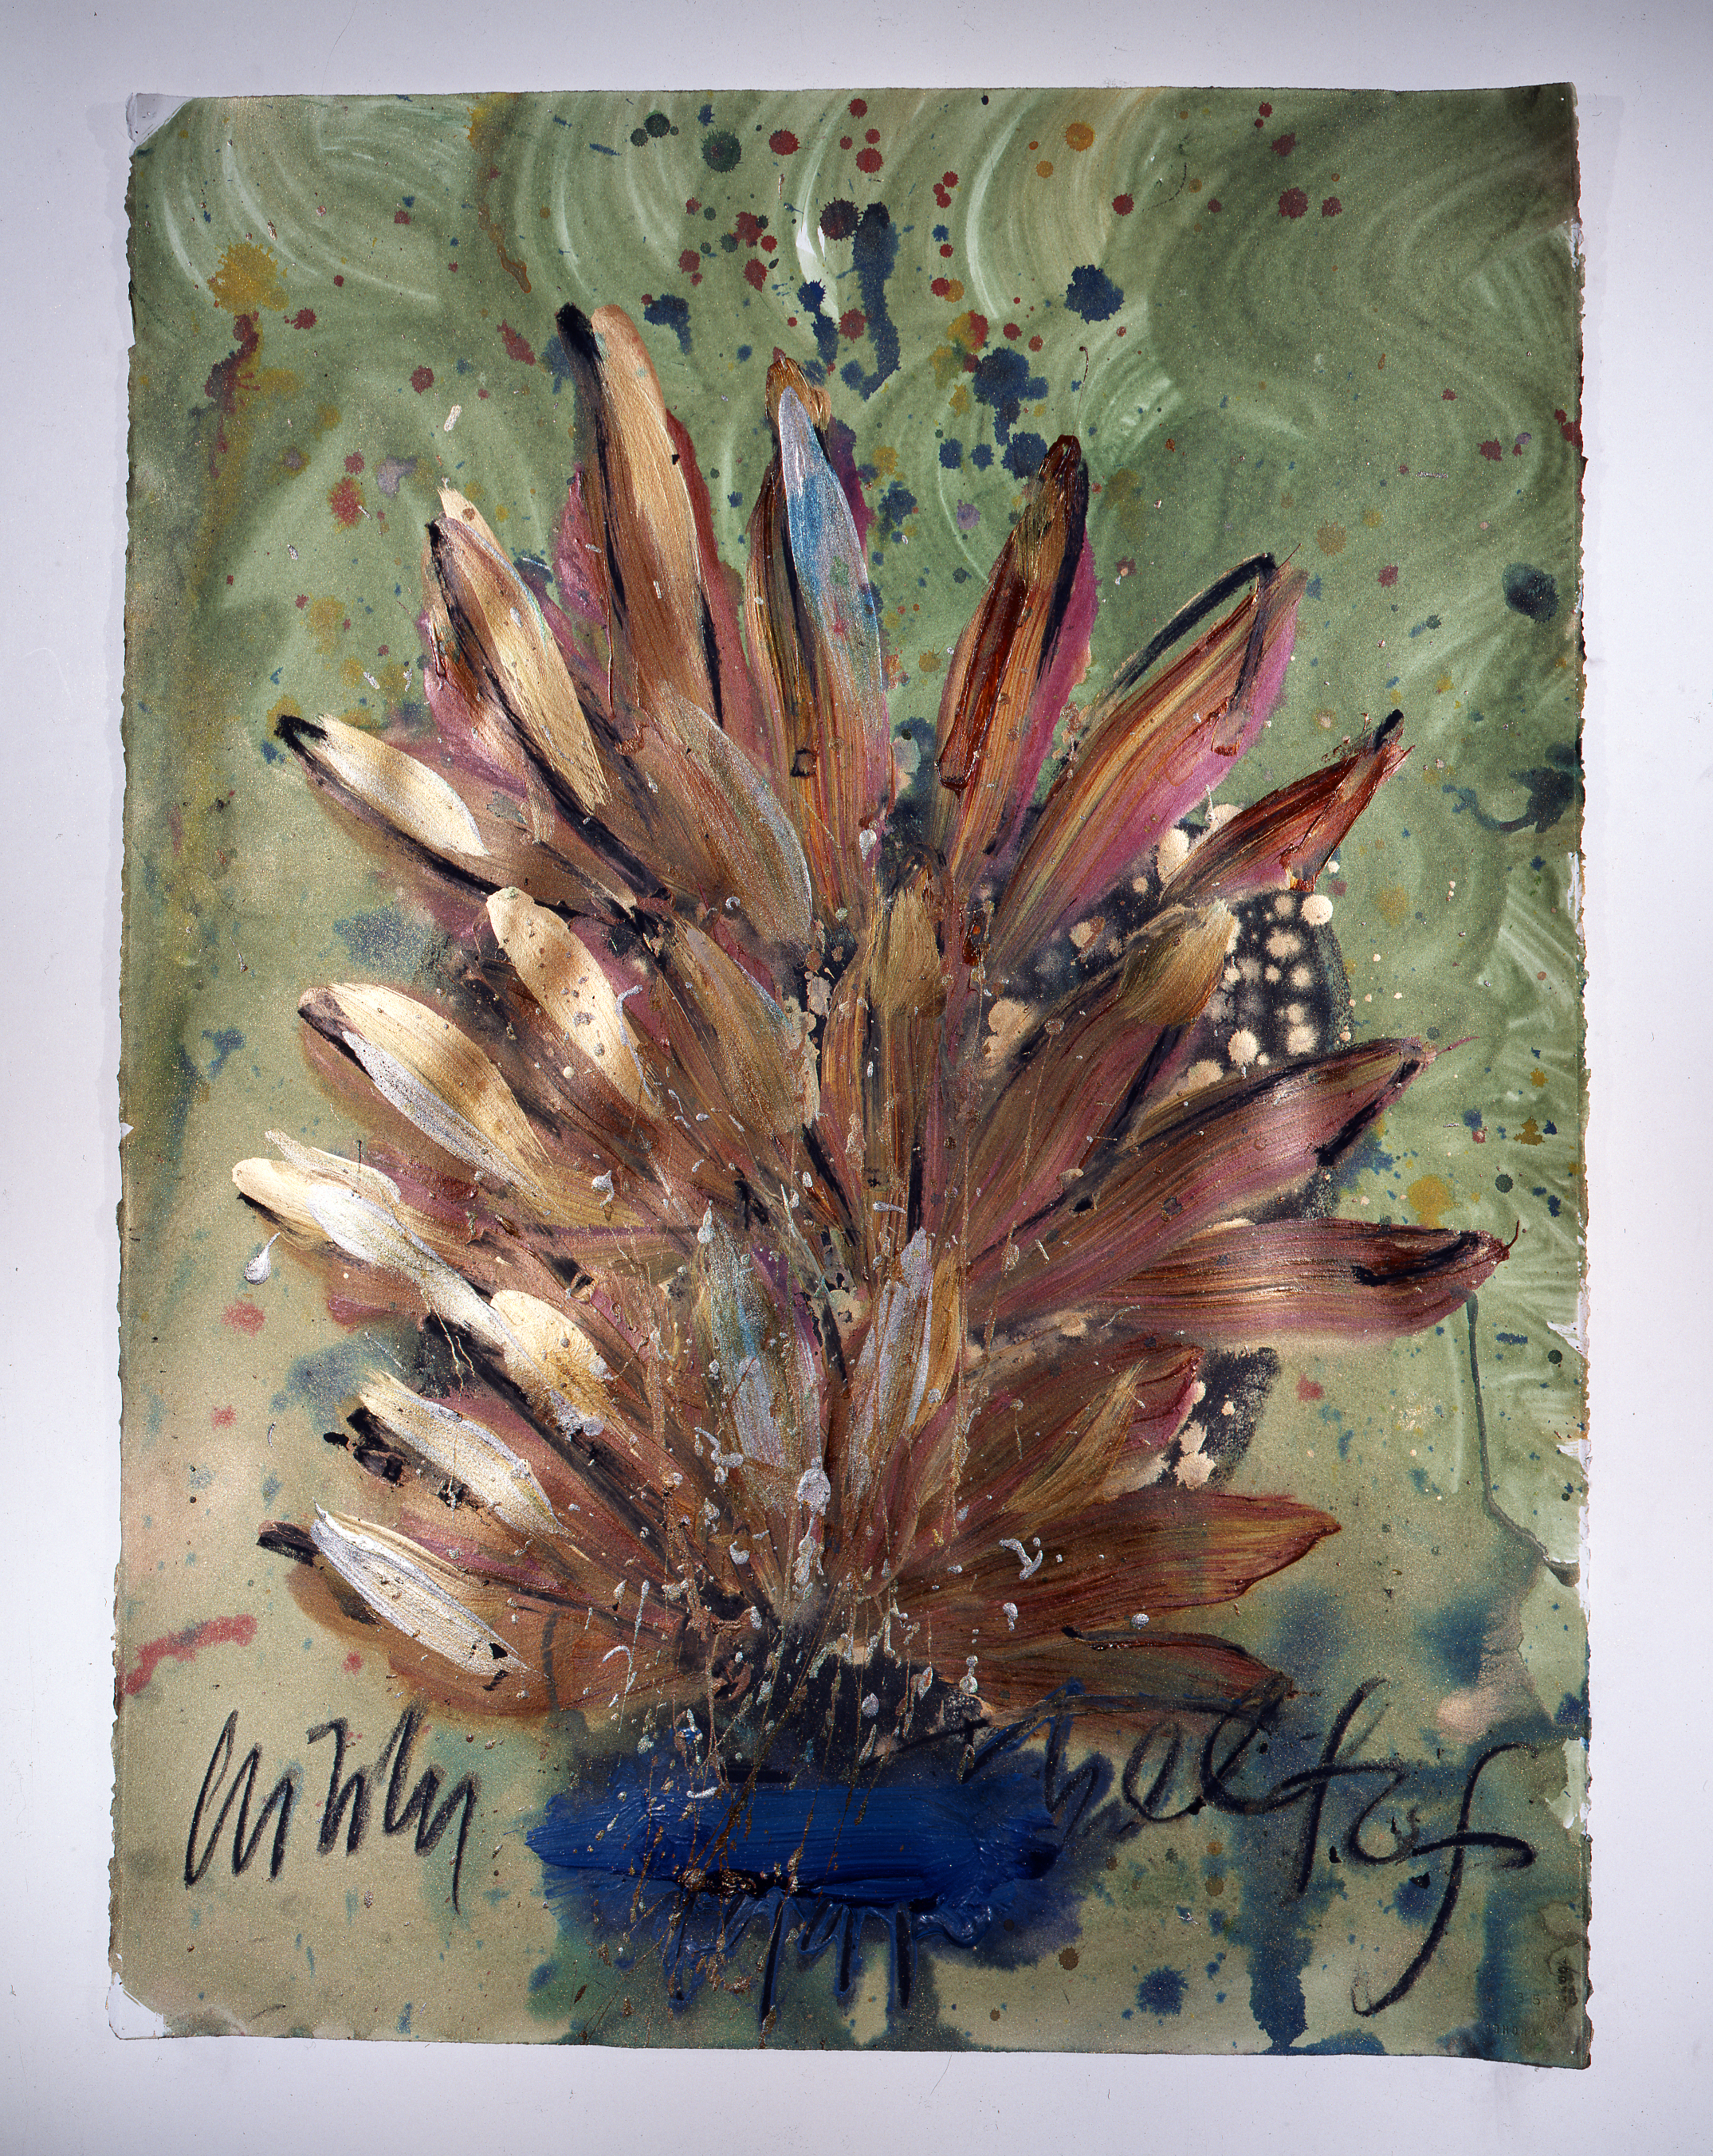 Dale Chihuly,  Ebeltoft Drawing,  (1991, mixed media on paper, 30 x 22 inches), DC.341